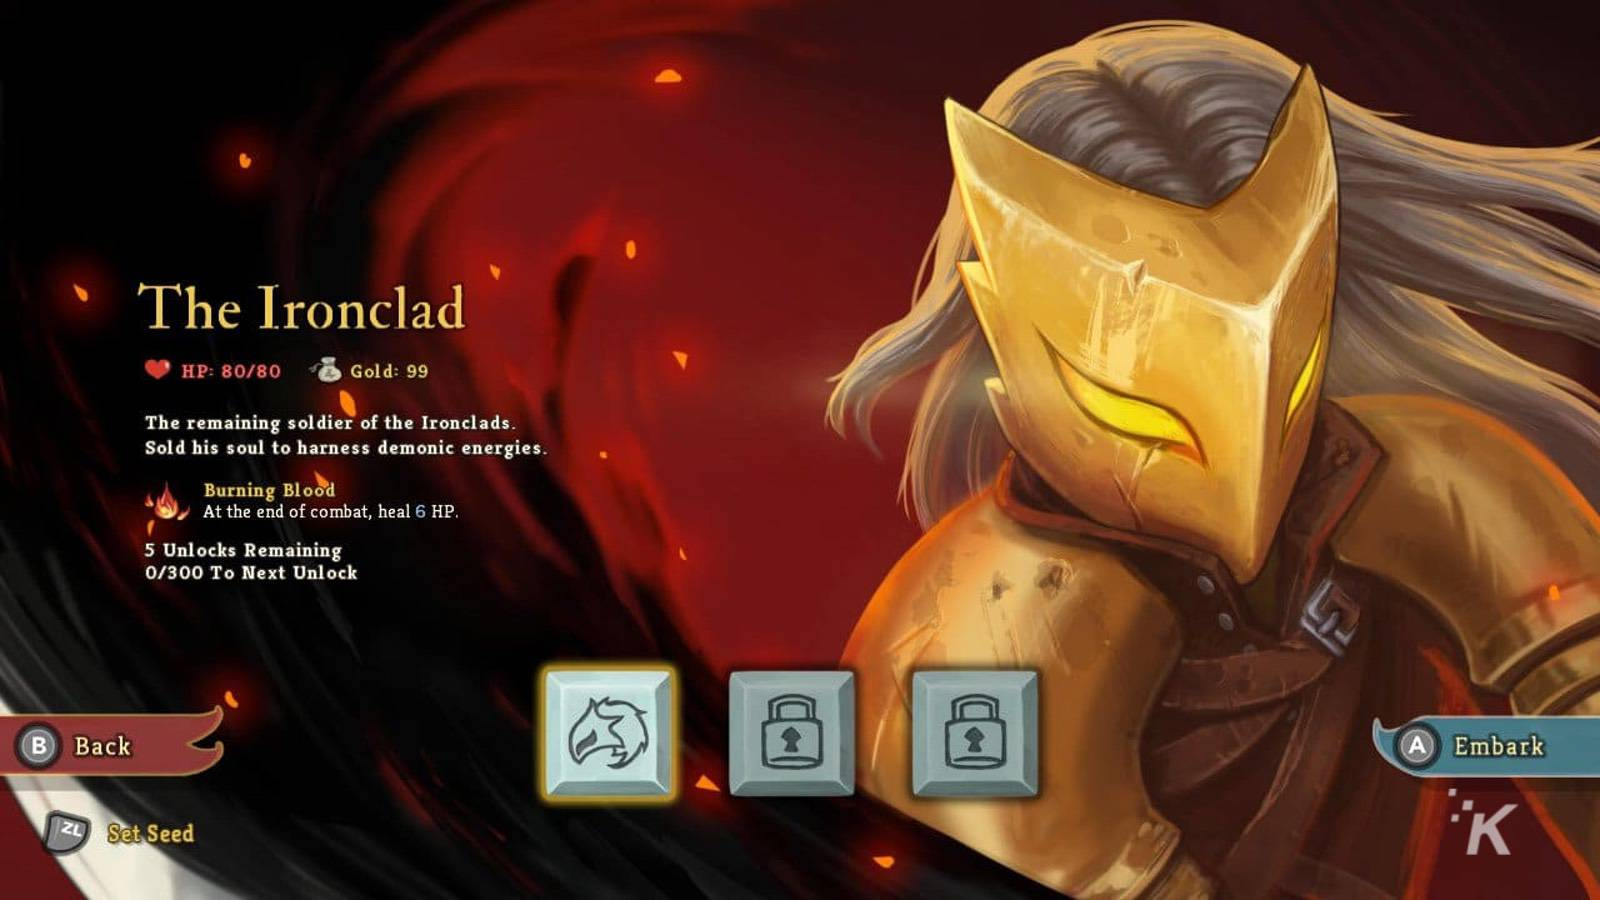 the ironclad card